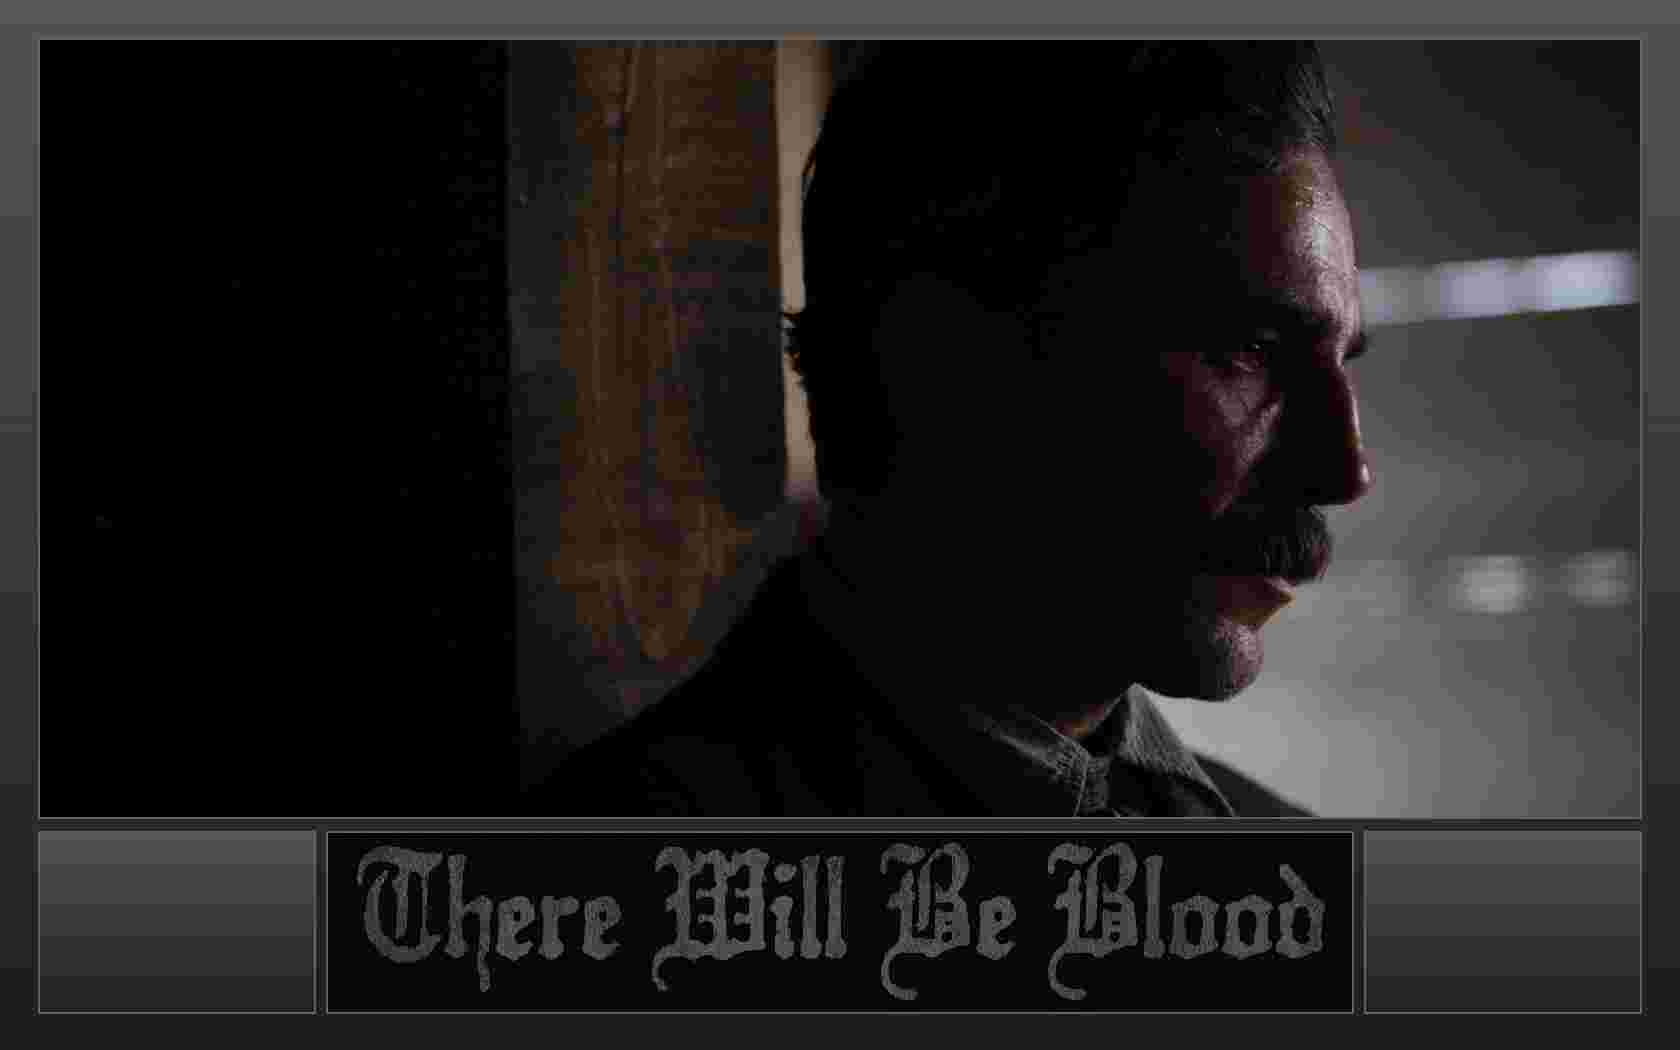 There Will Be Blood widescreen wallpaper 1680 292826 1680x1050